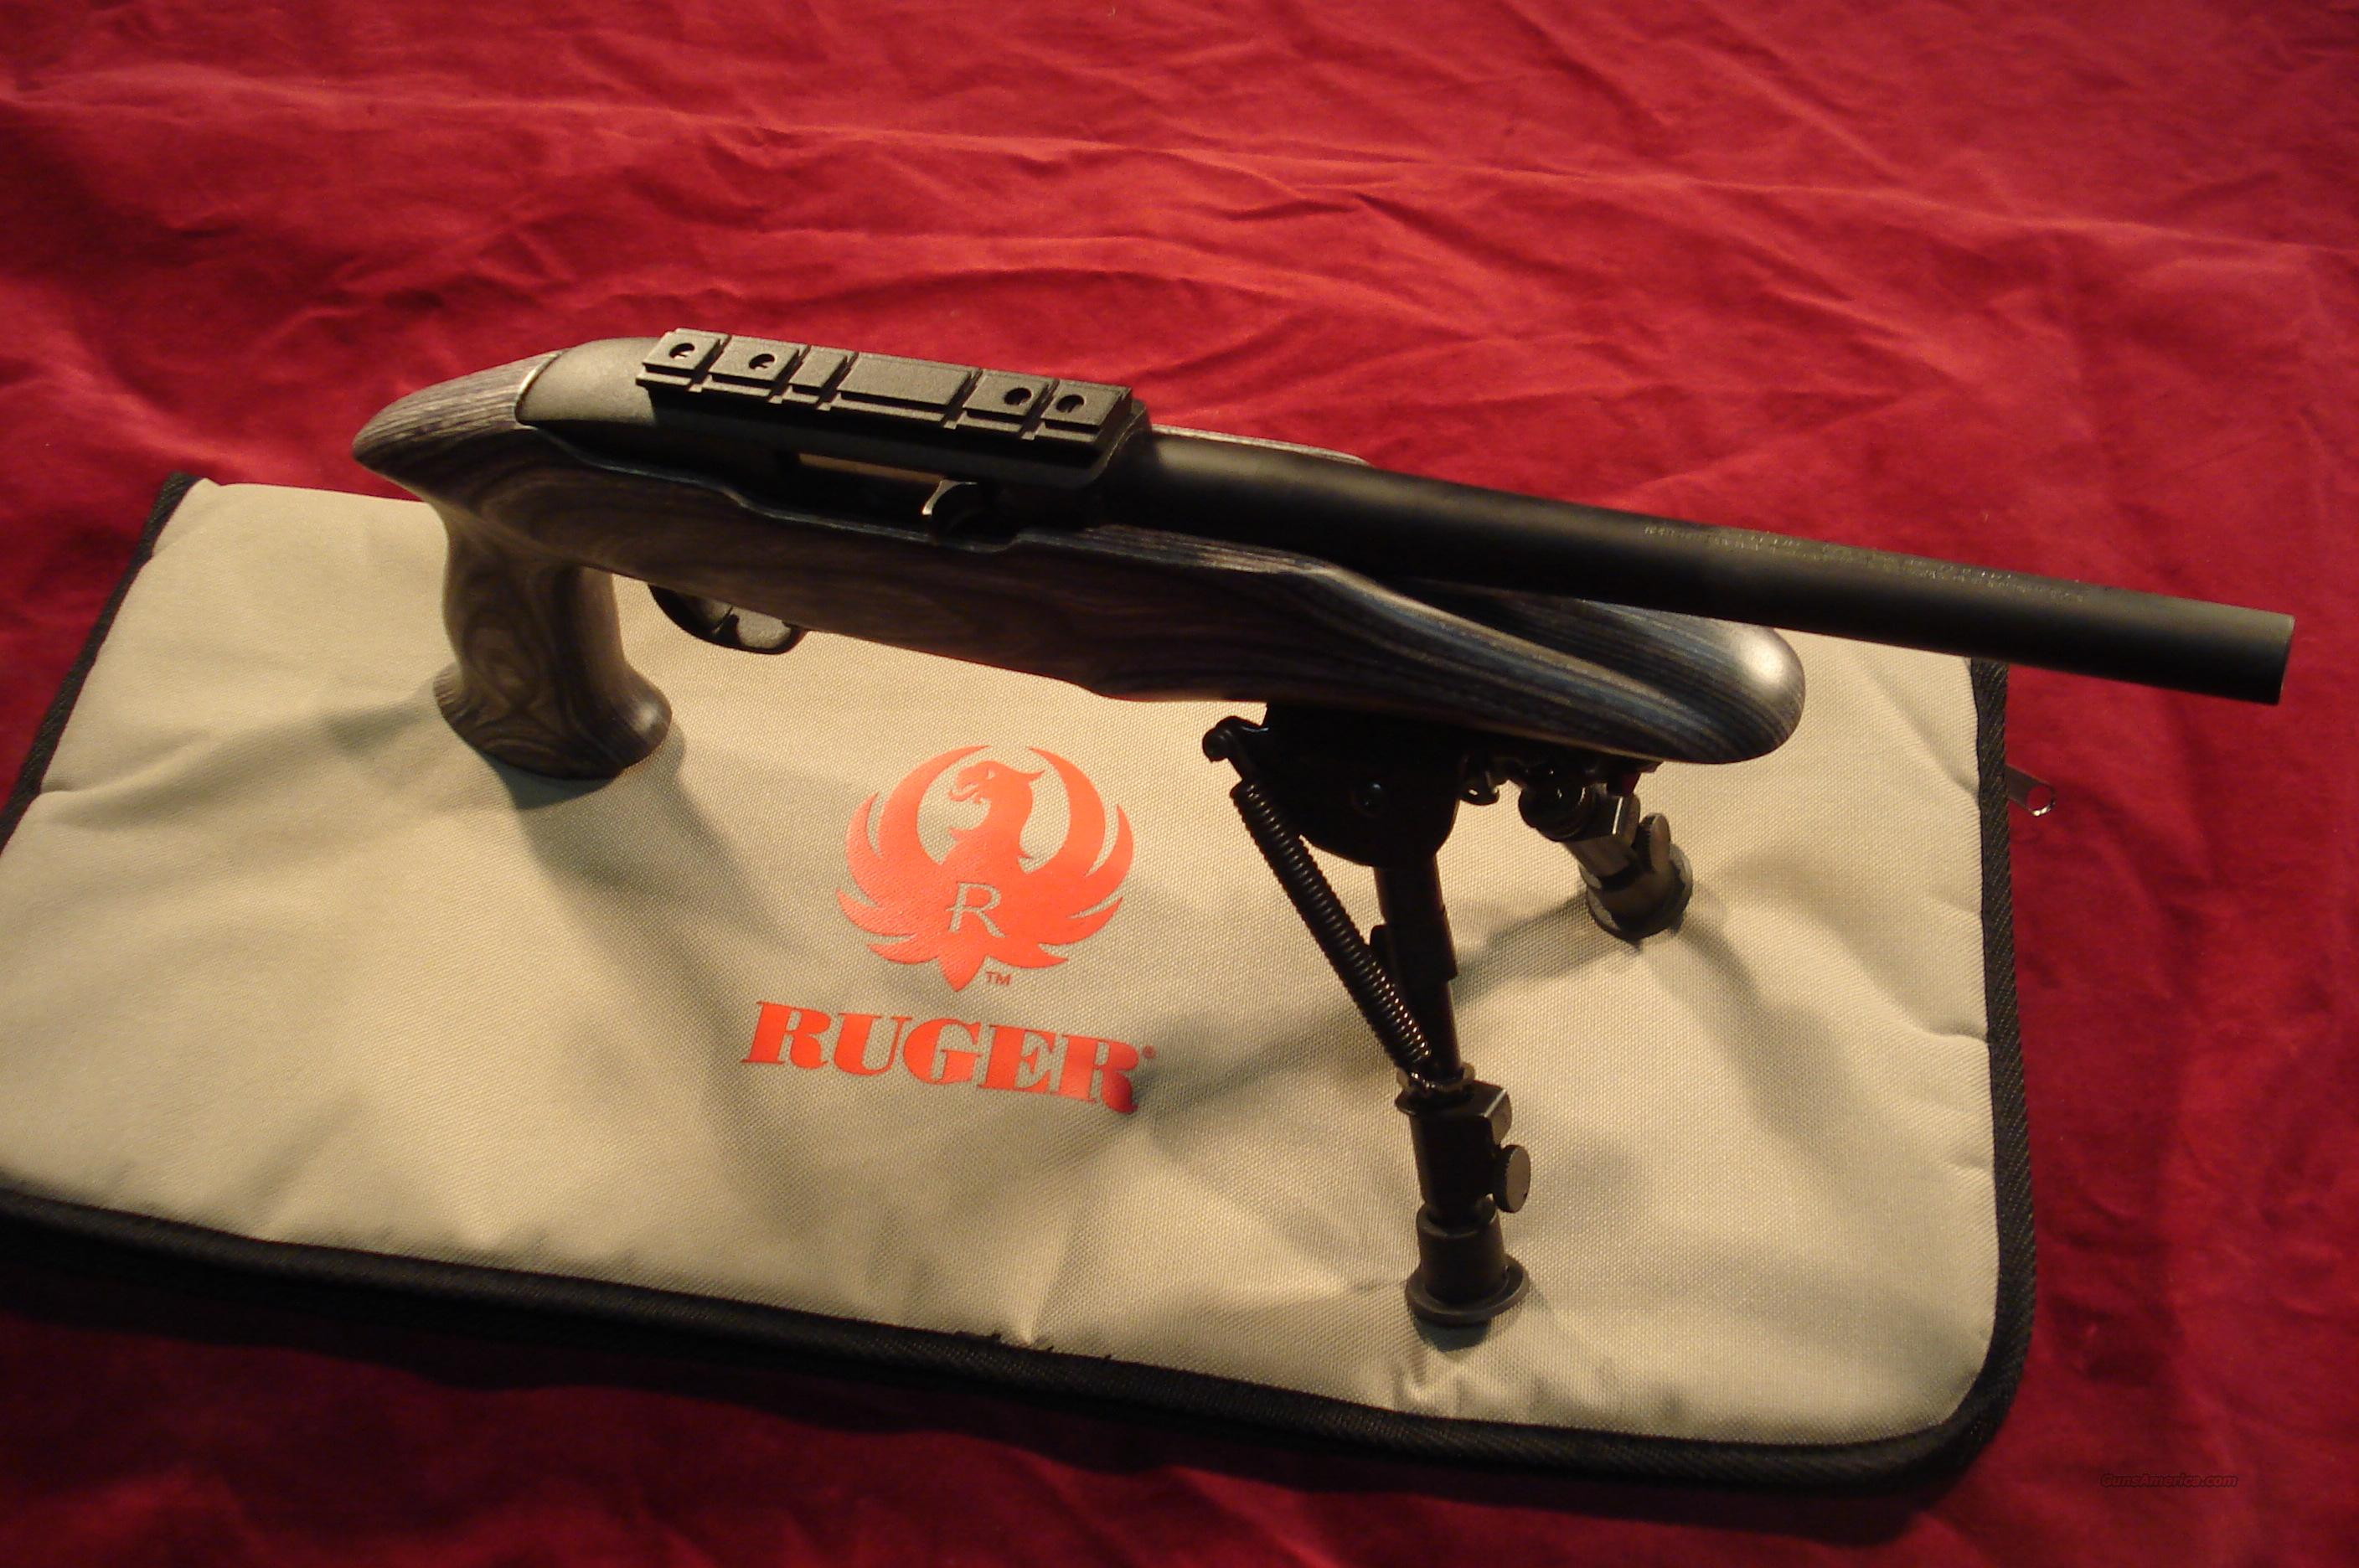 RUGER CHARGER 22LR PISTOL NEW  Guns > Pistols > Ruger Semi-Auto Pistols > P-Series